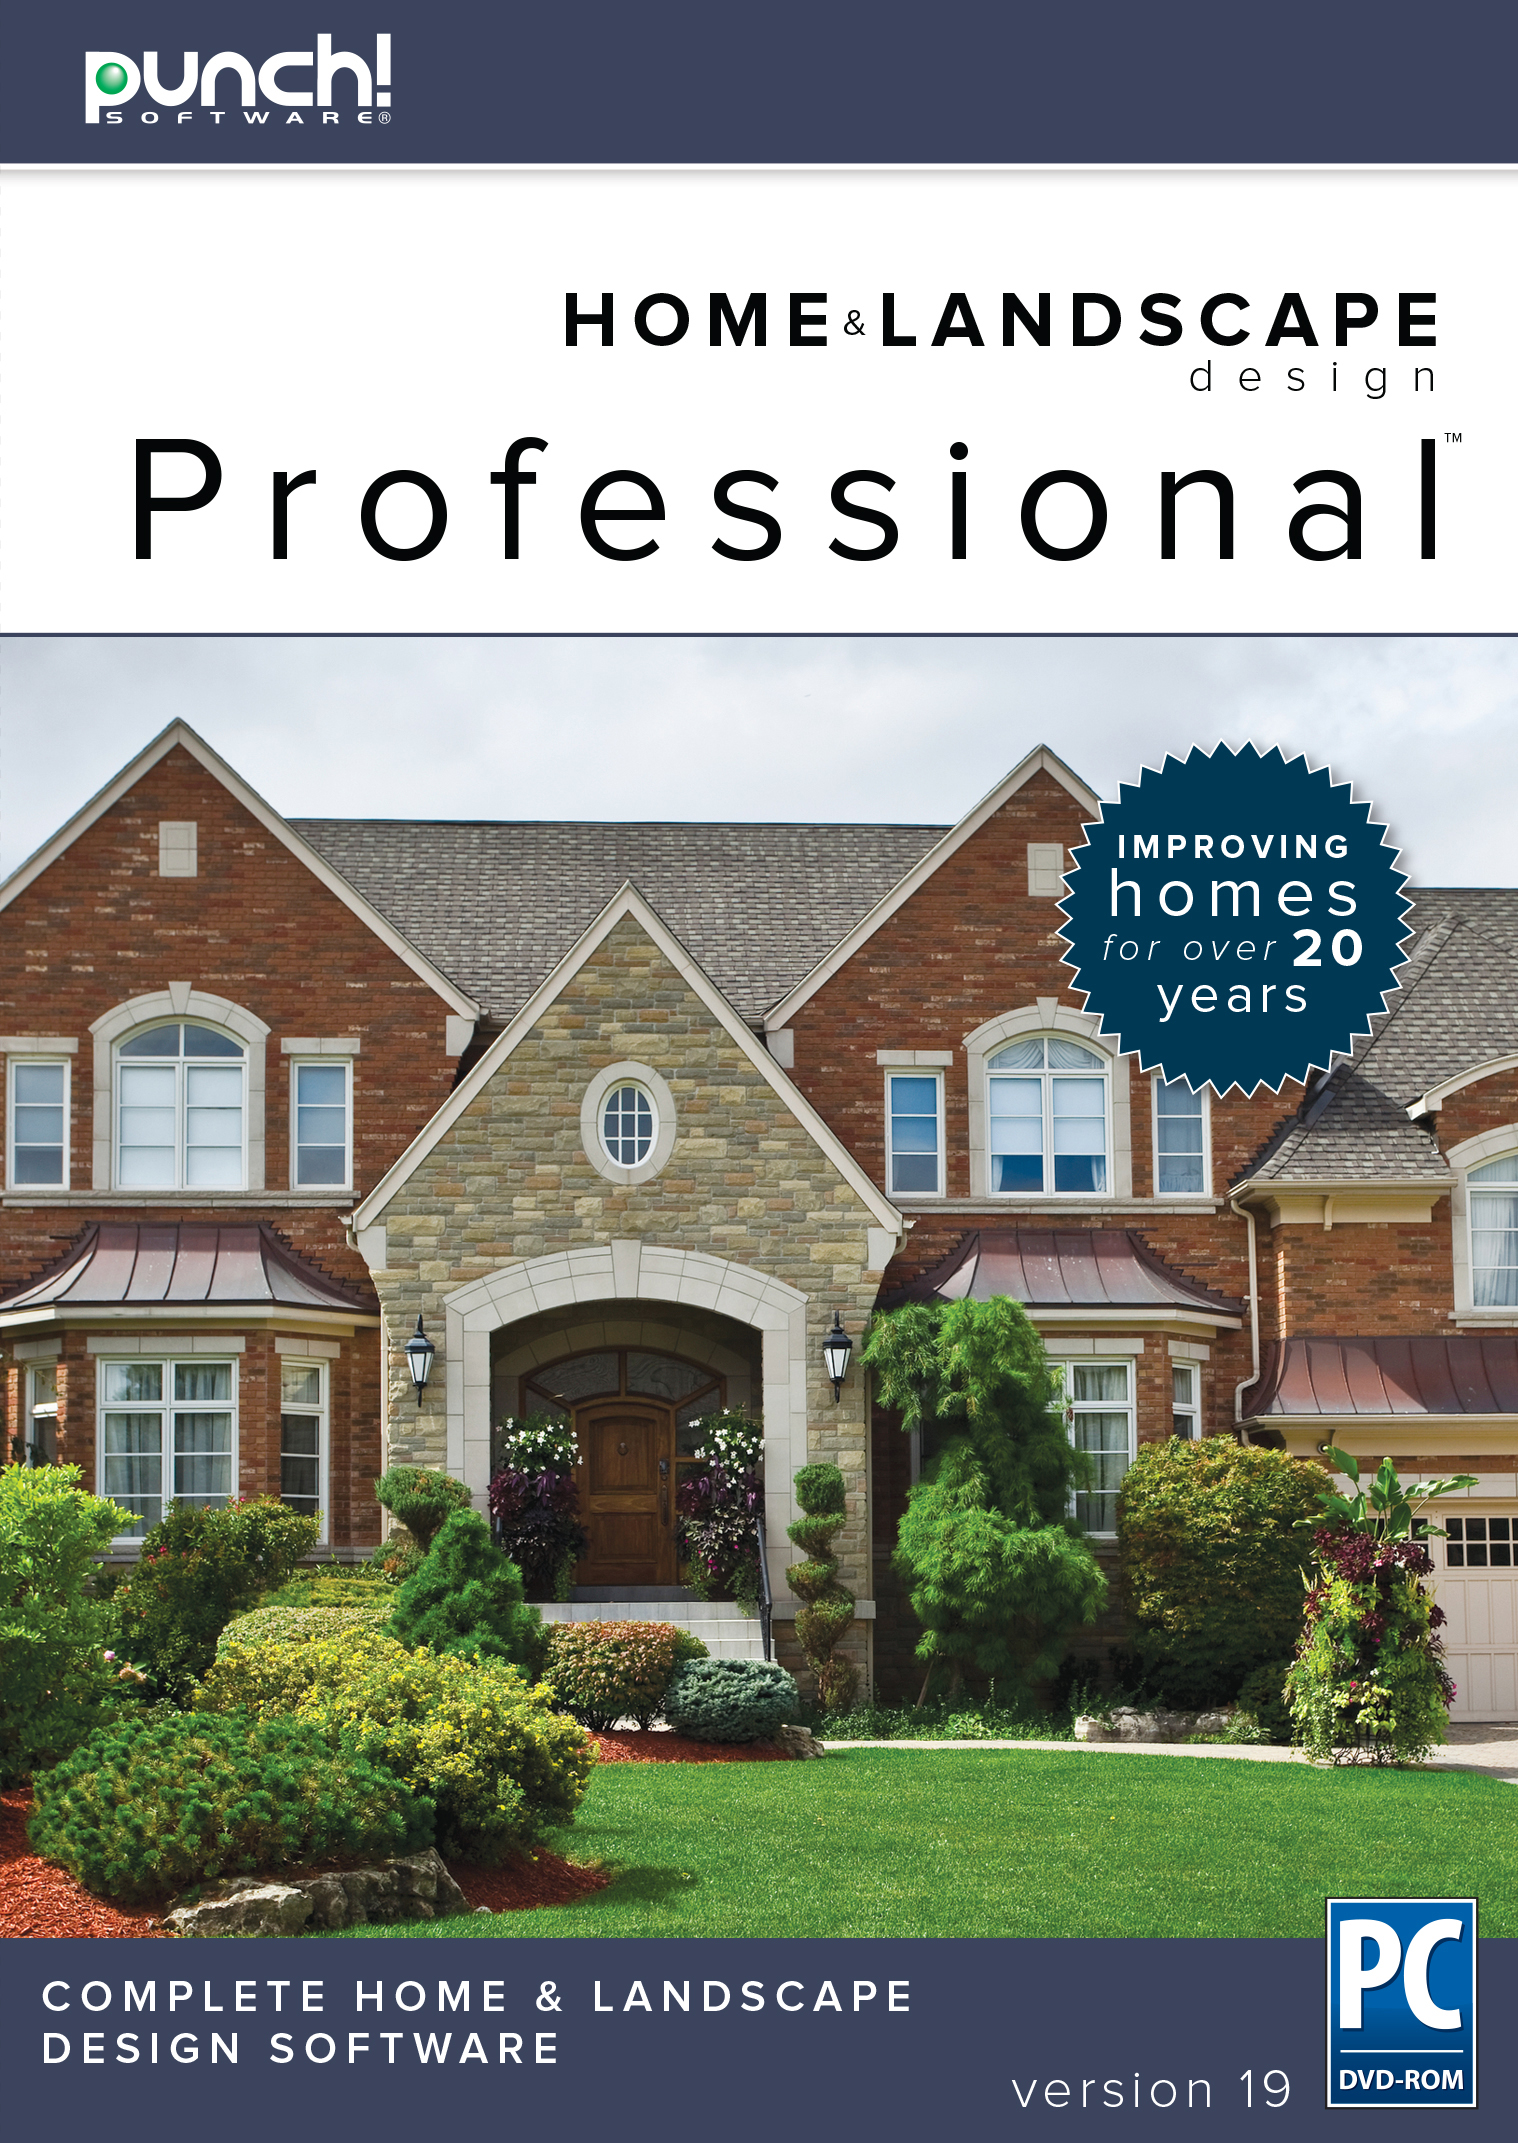 Punch! Home & Landscape Design Professional v19 for Windows PC (Punch Design Software)